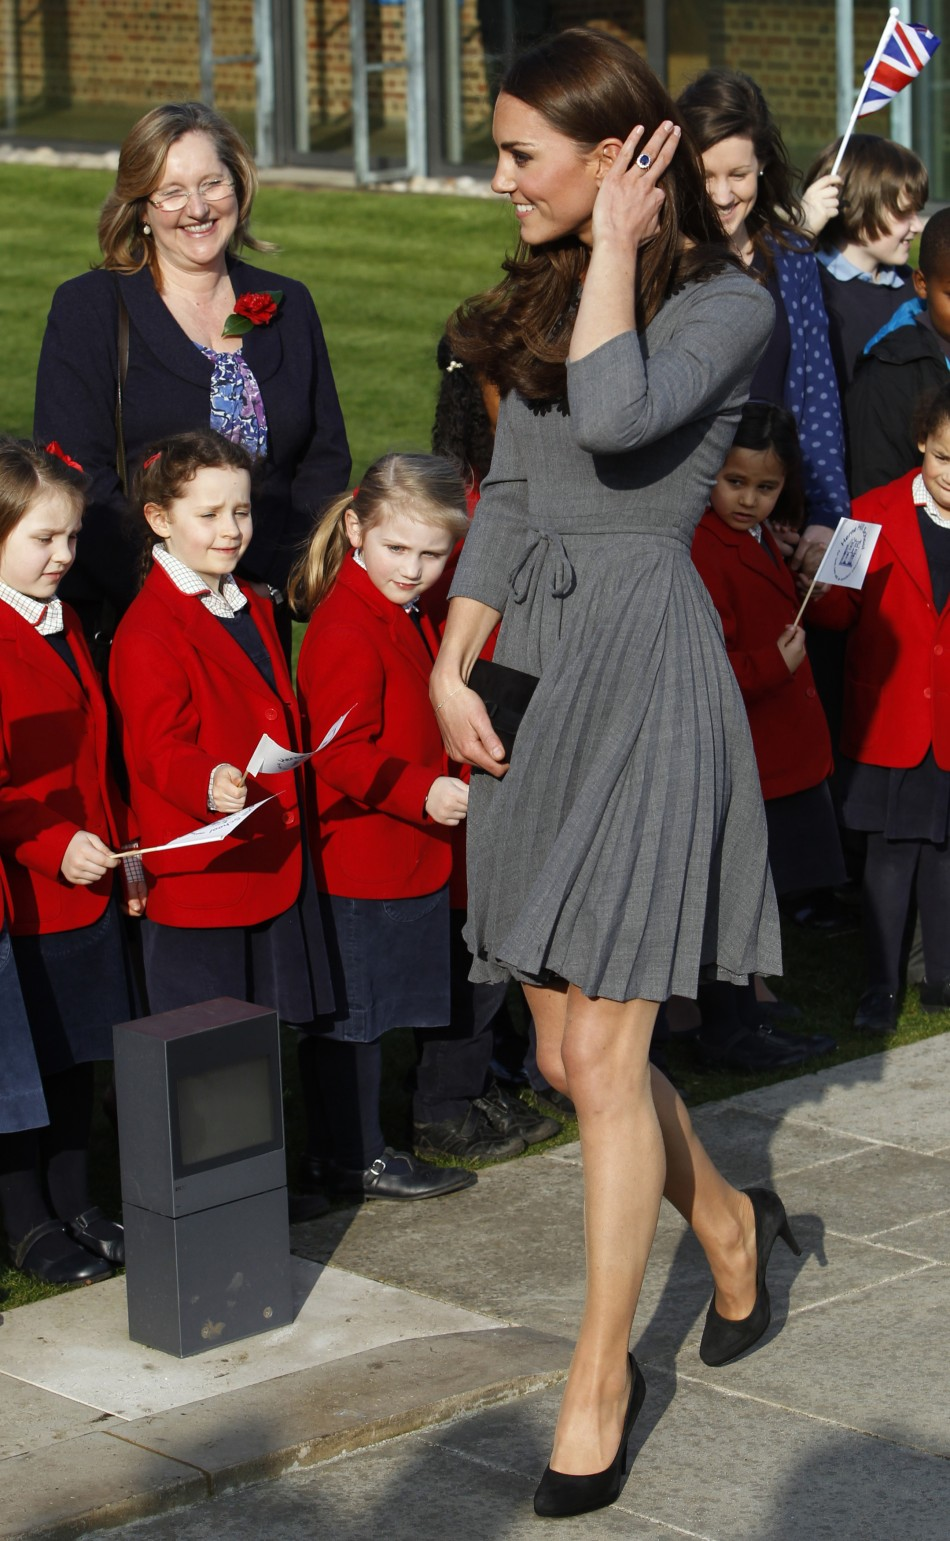 Kate Middleton's Royal Engagement With the 'In-Laws' at Dulwich Art Gallery